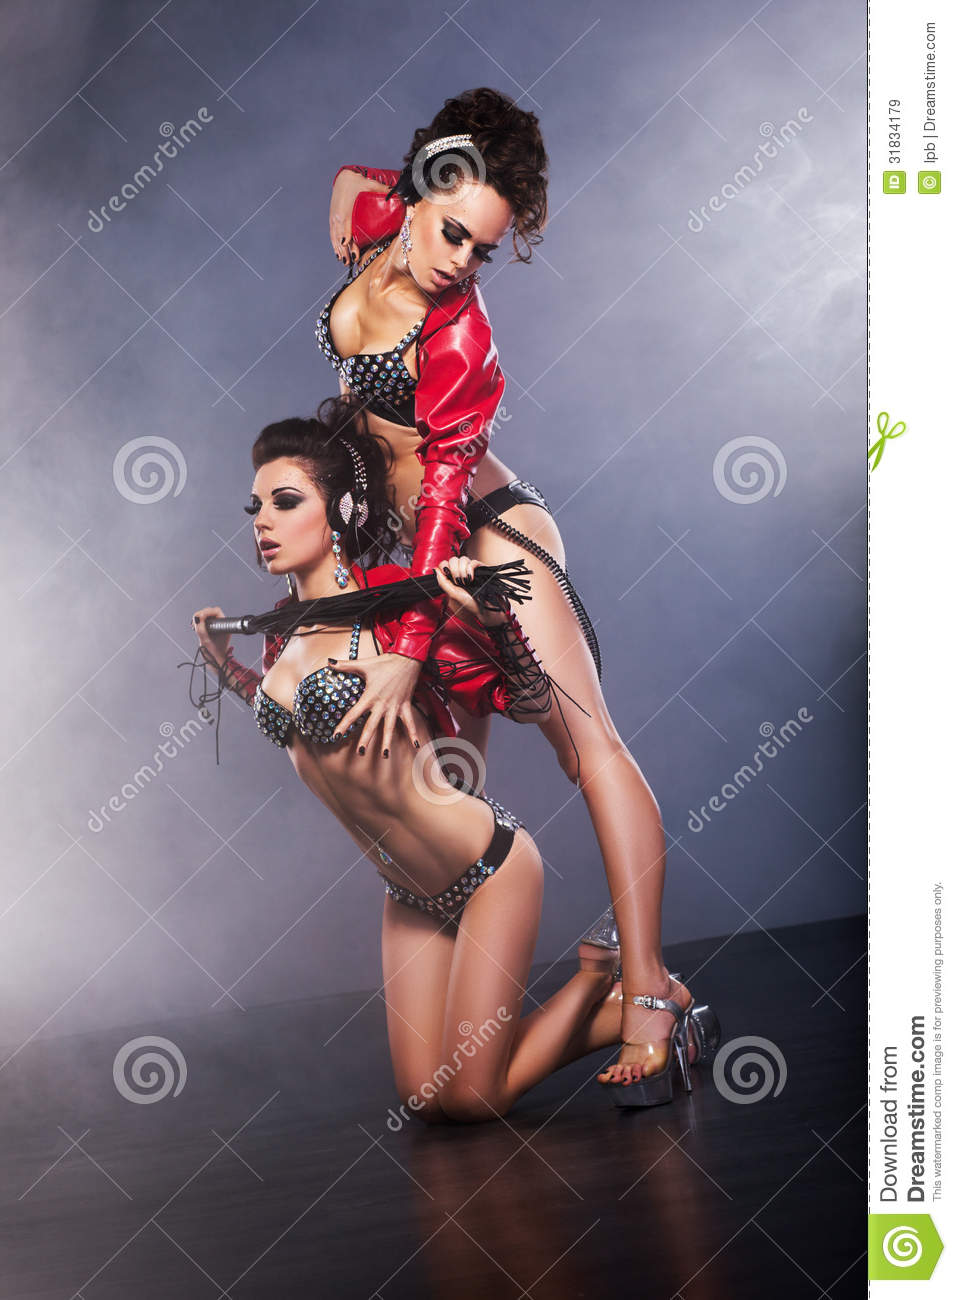 Performance Nightlife Halfdressed Flirtatious Women In